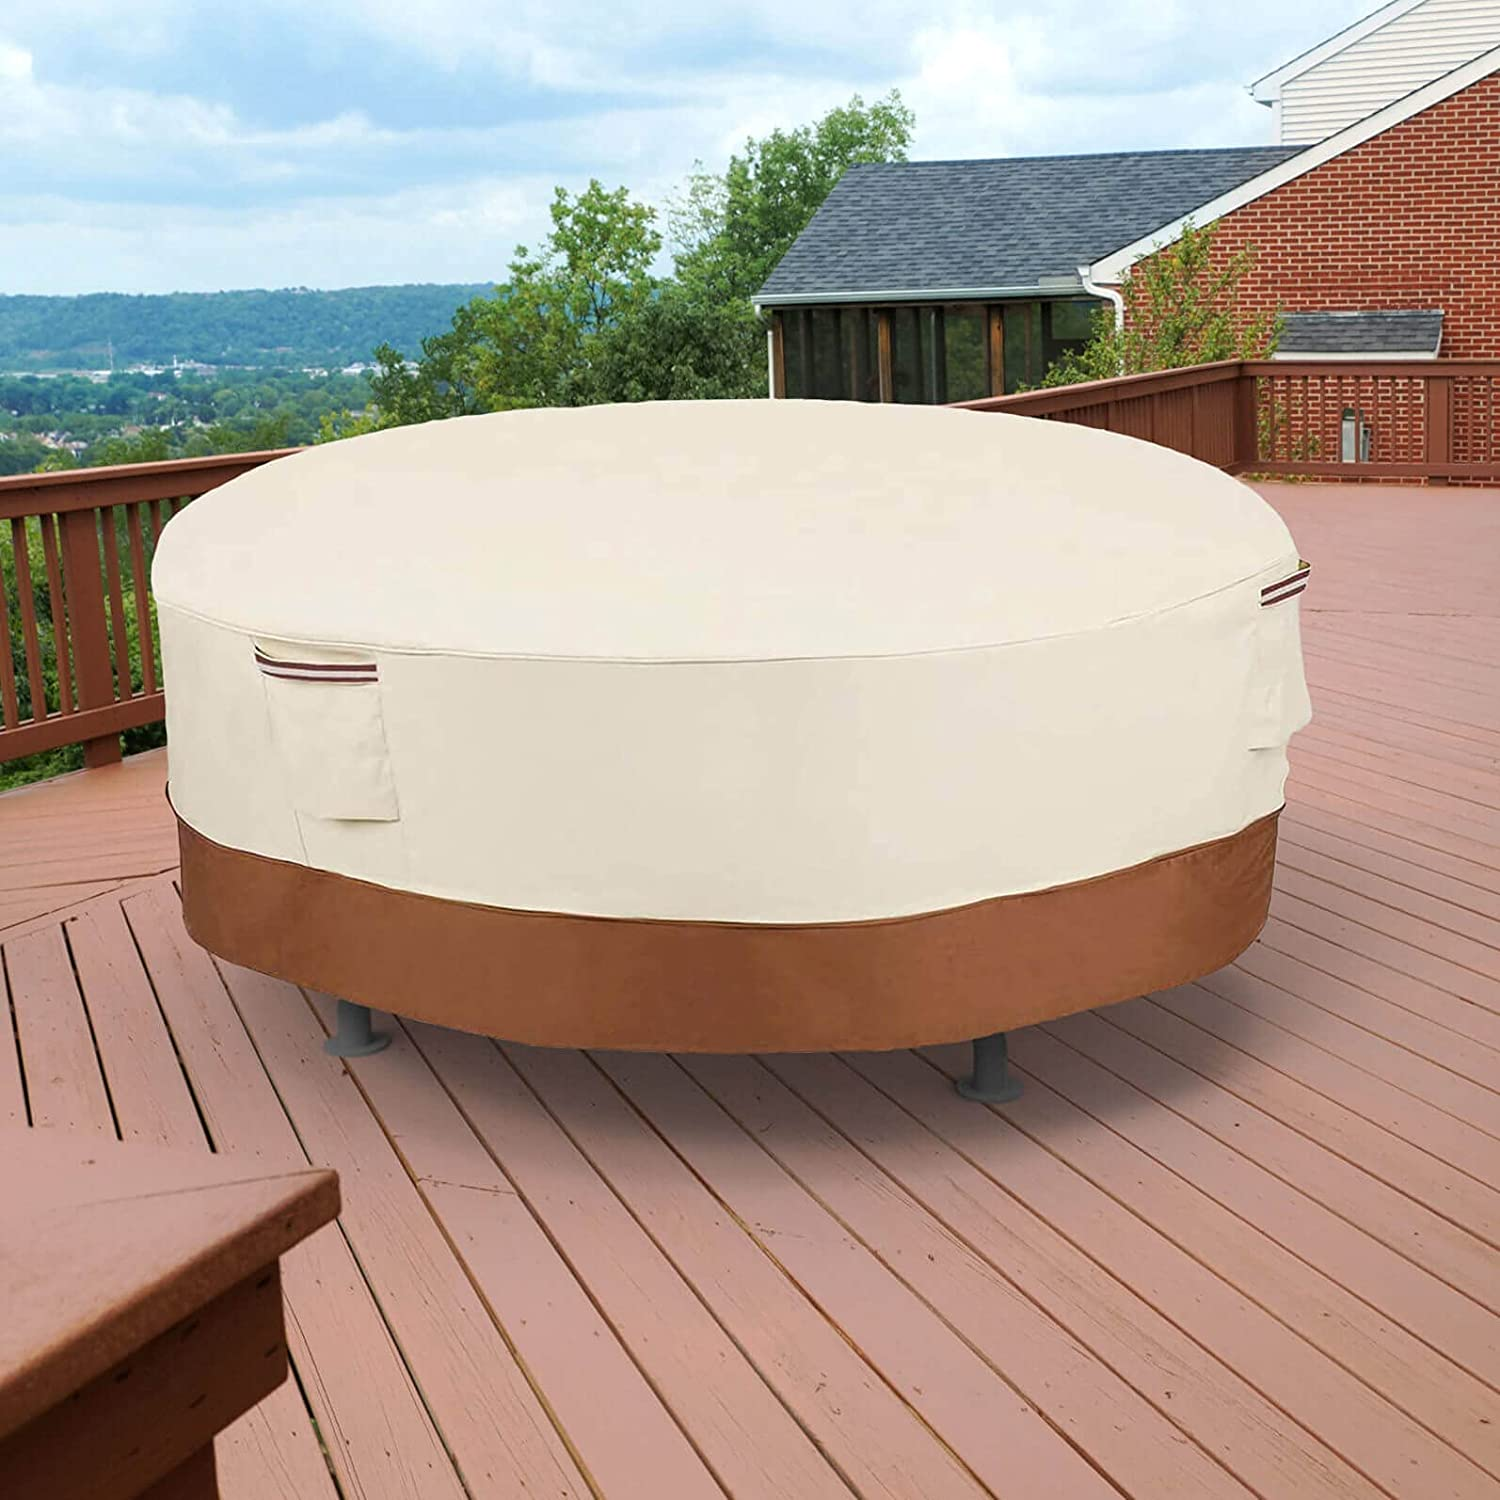 Patio Table Covers Waterproof Round, Patio Table Covers Furniture Covers Outdoor UV Resistant Anti-Fading for Round Table Chairs Sets, 76